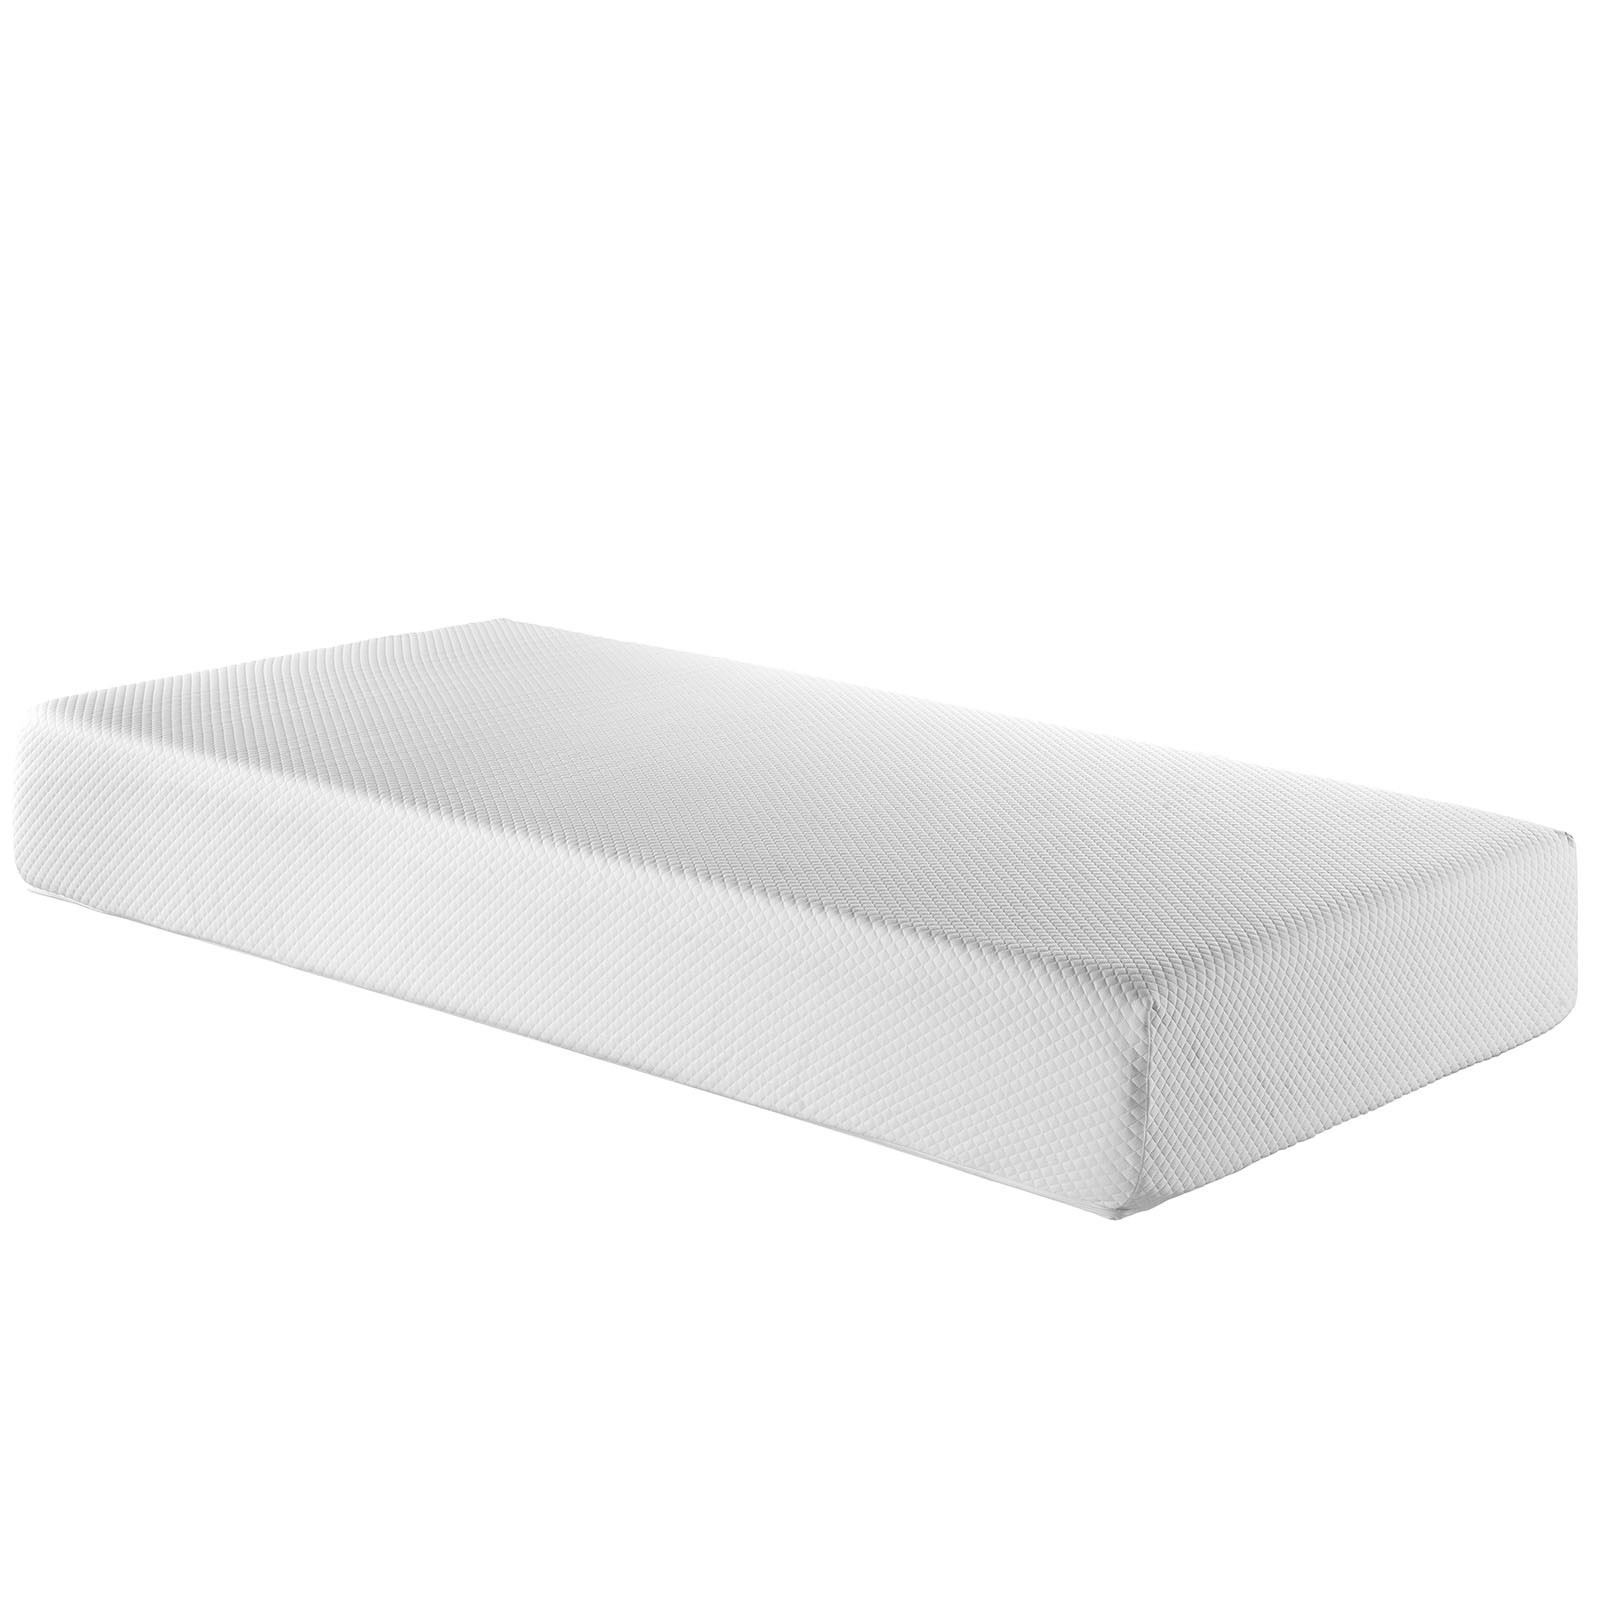 "Aveline 10"" Twin Mattress"